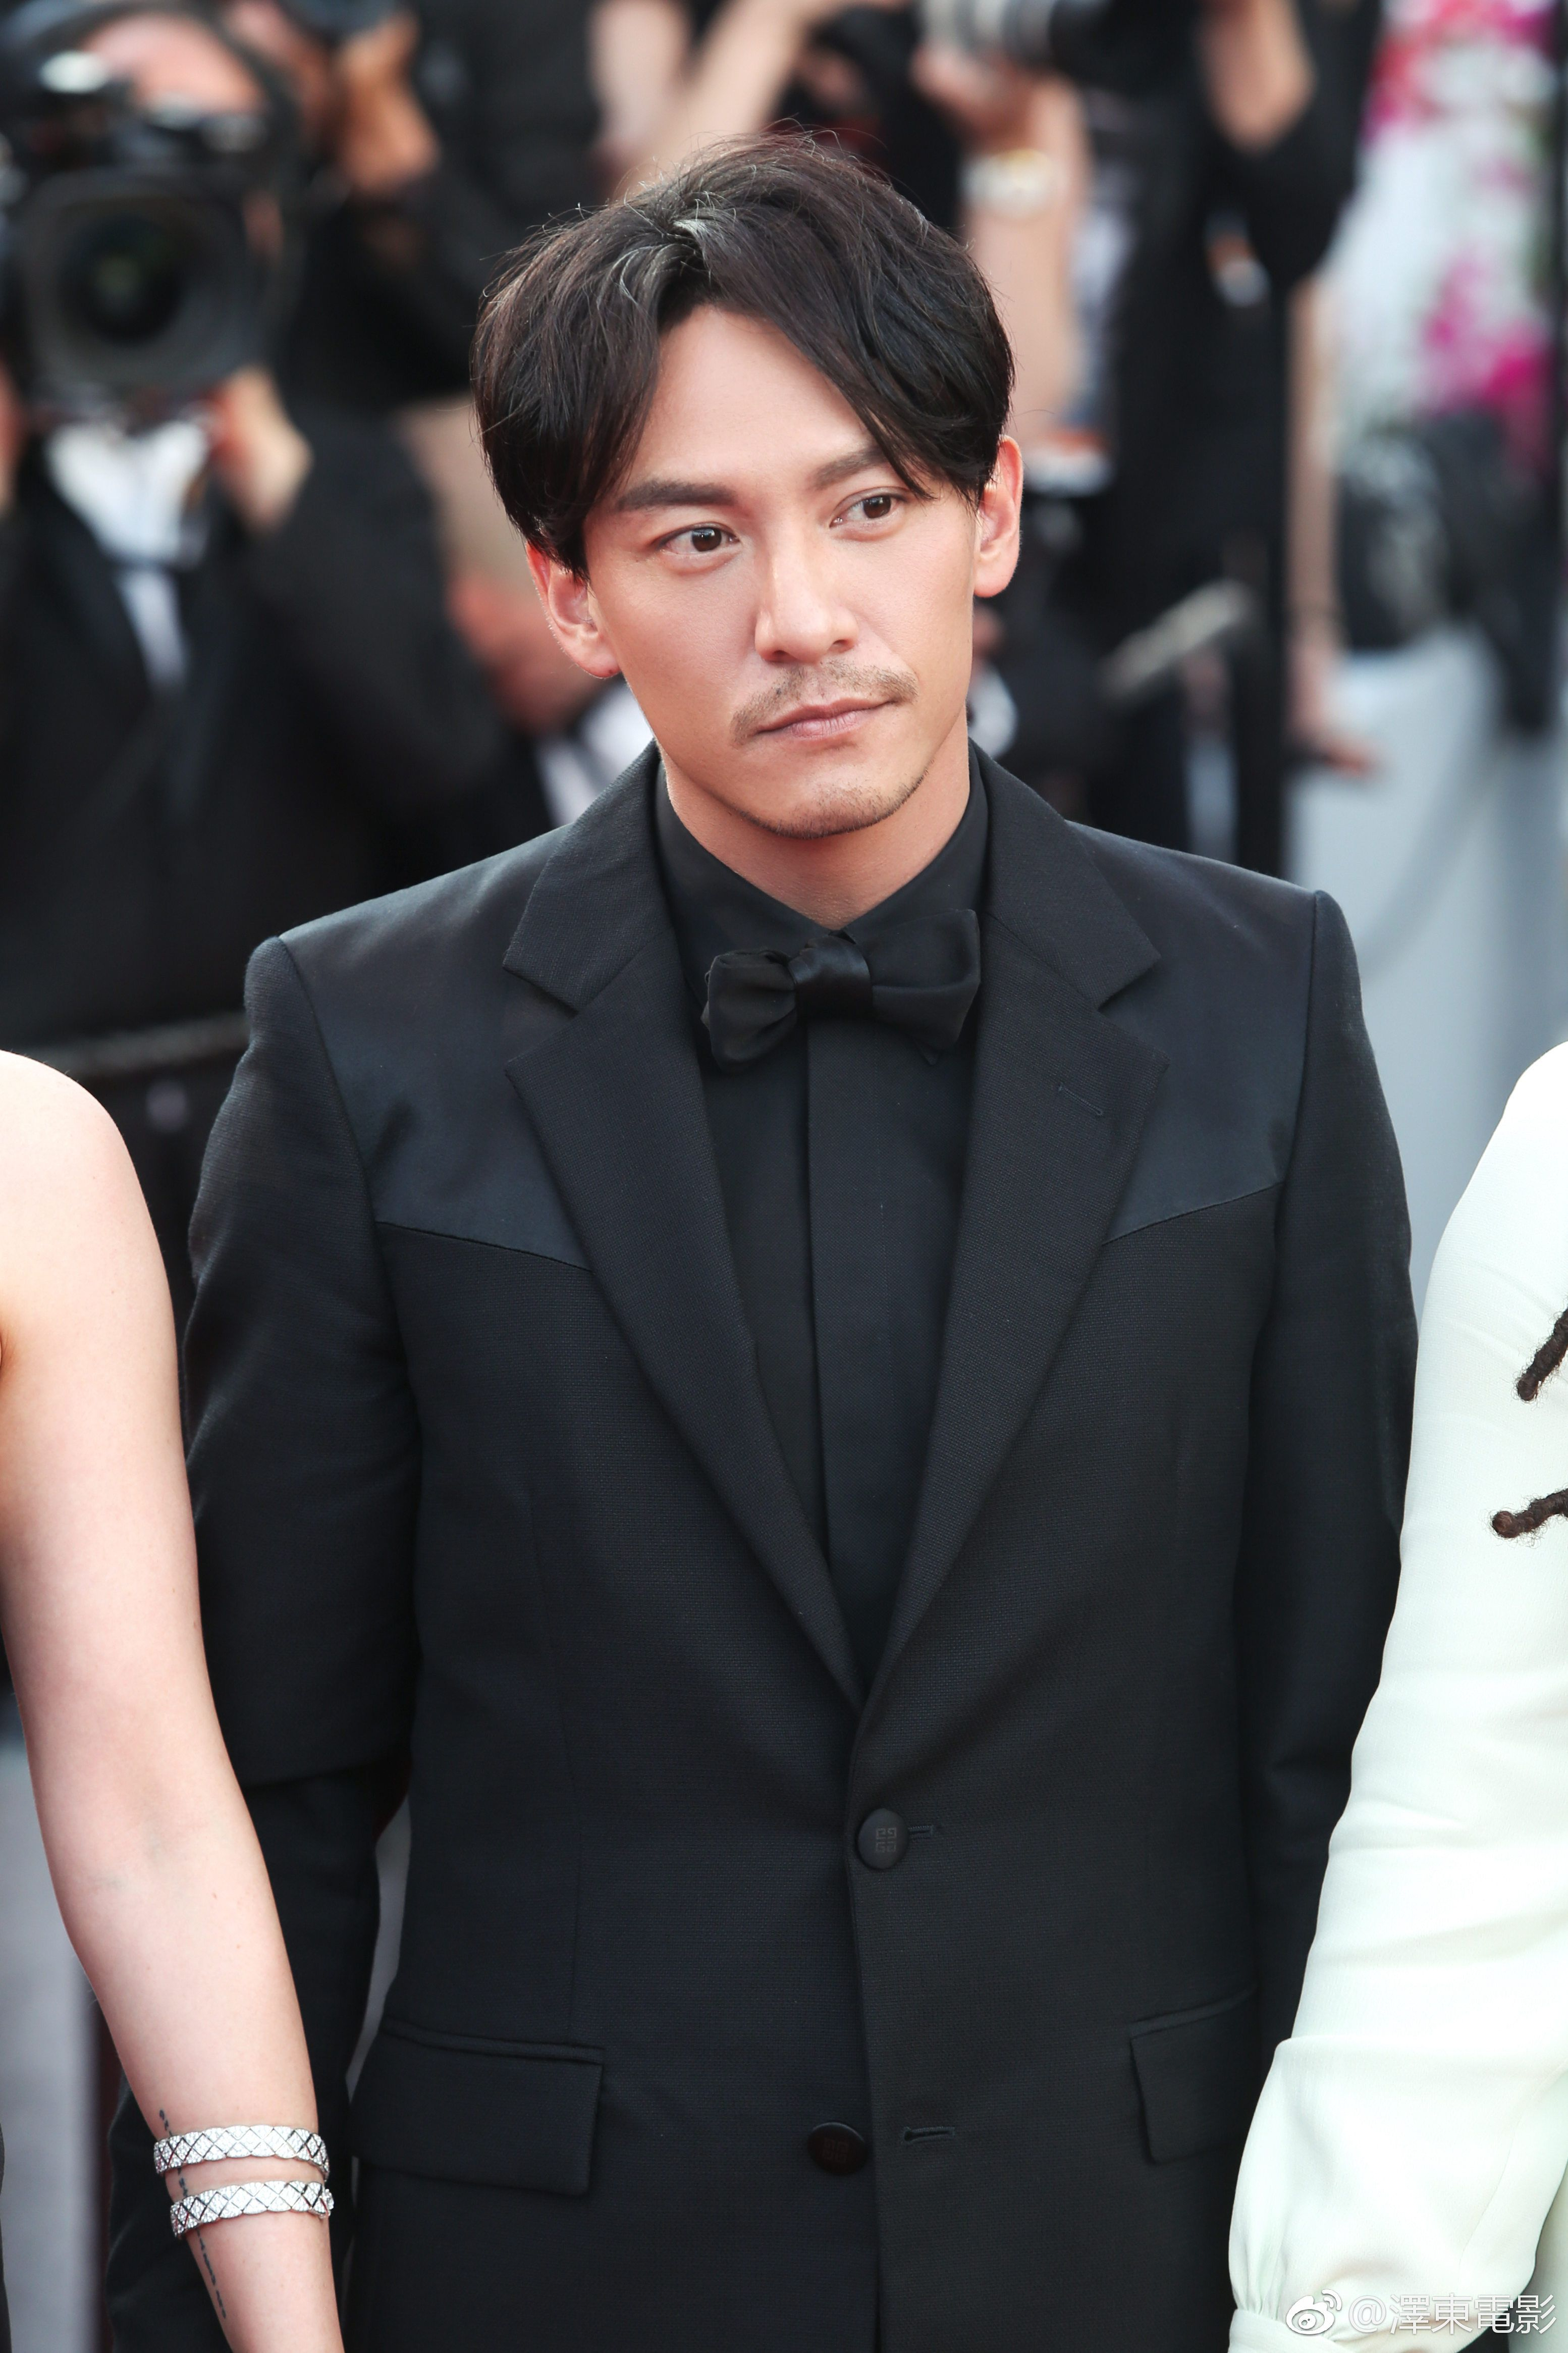 Chang Chen / 張震 in Cannes 20...